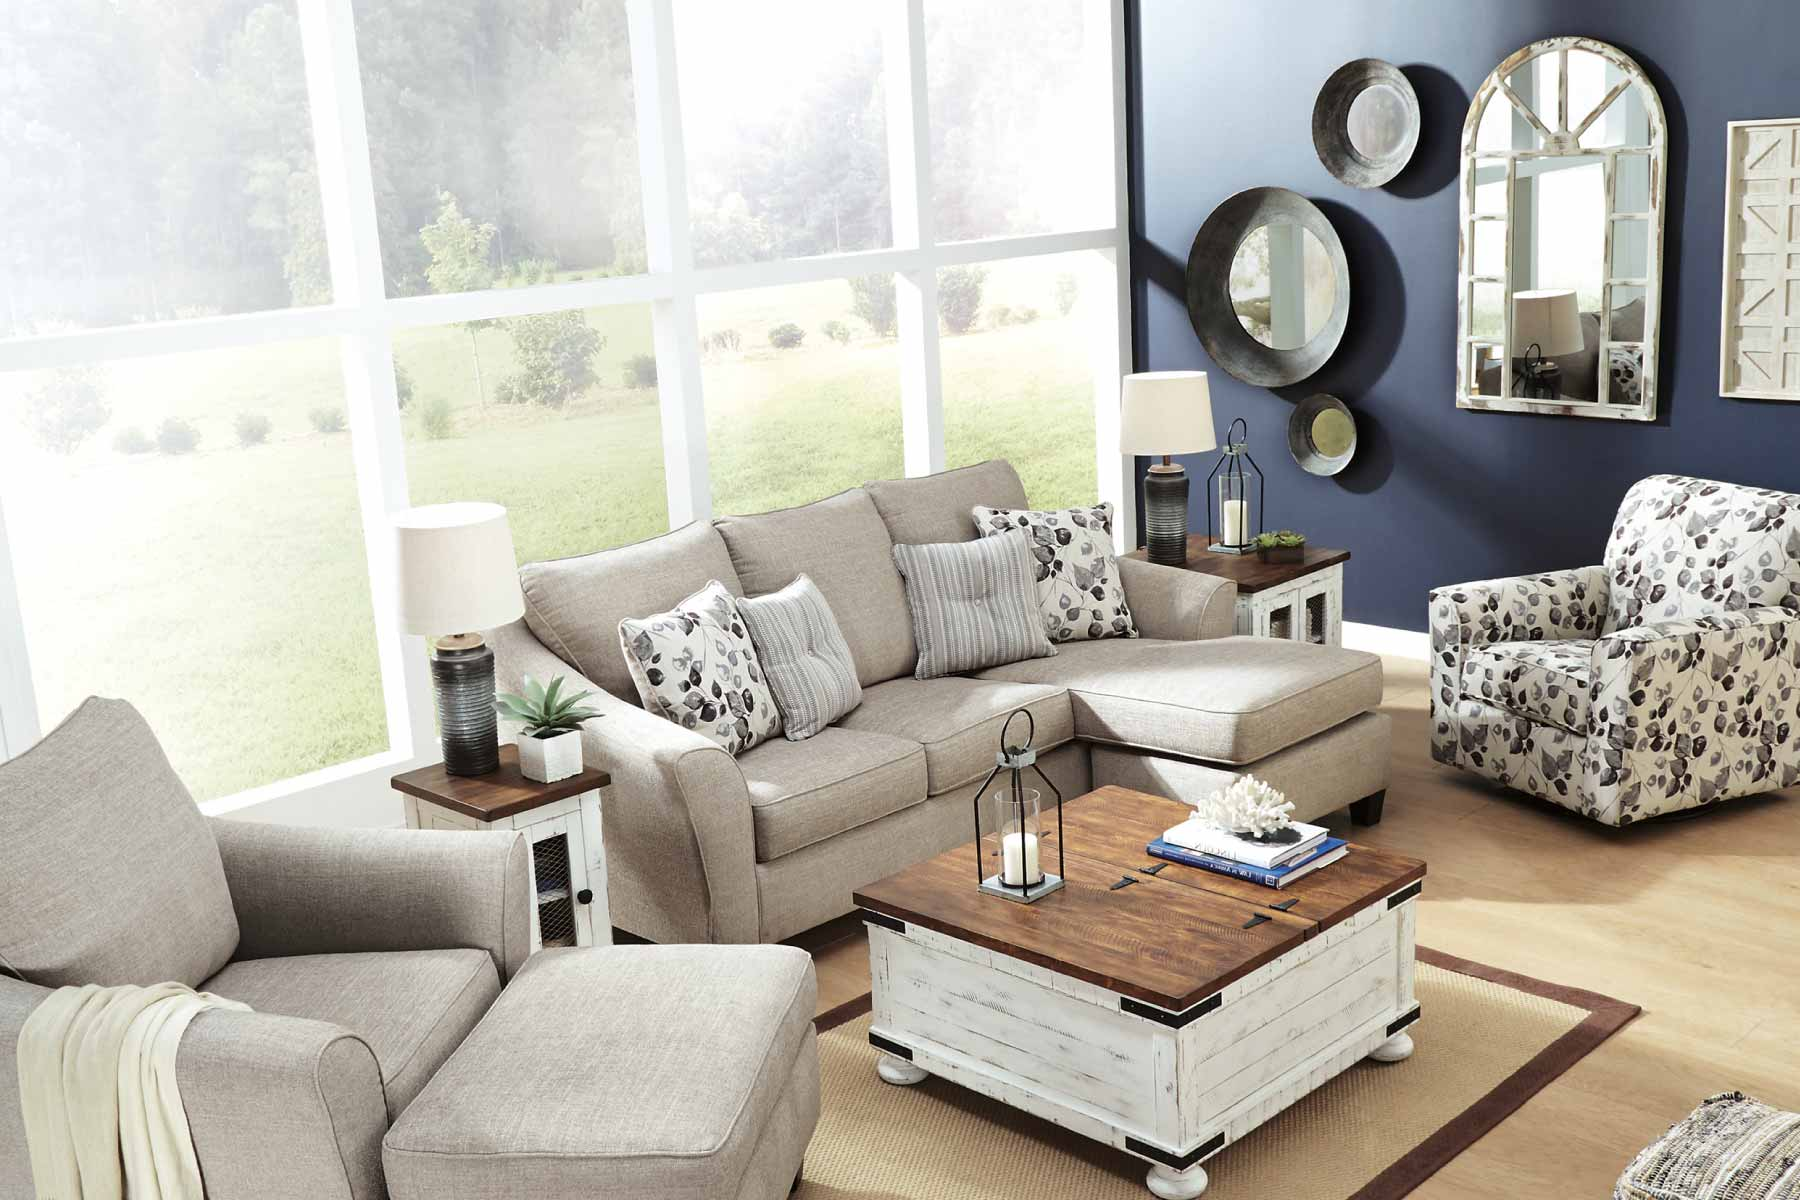 Abbey beige sofa with moveable chaise in front of a large window and muted blue wall.